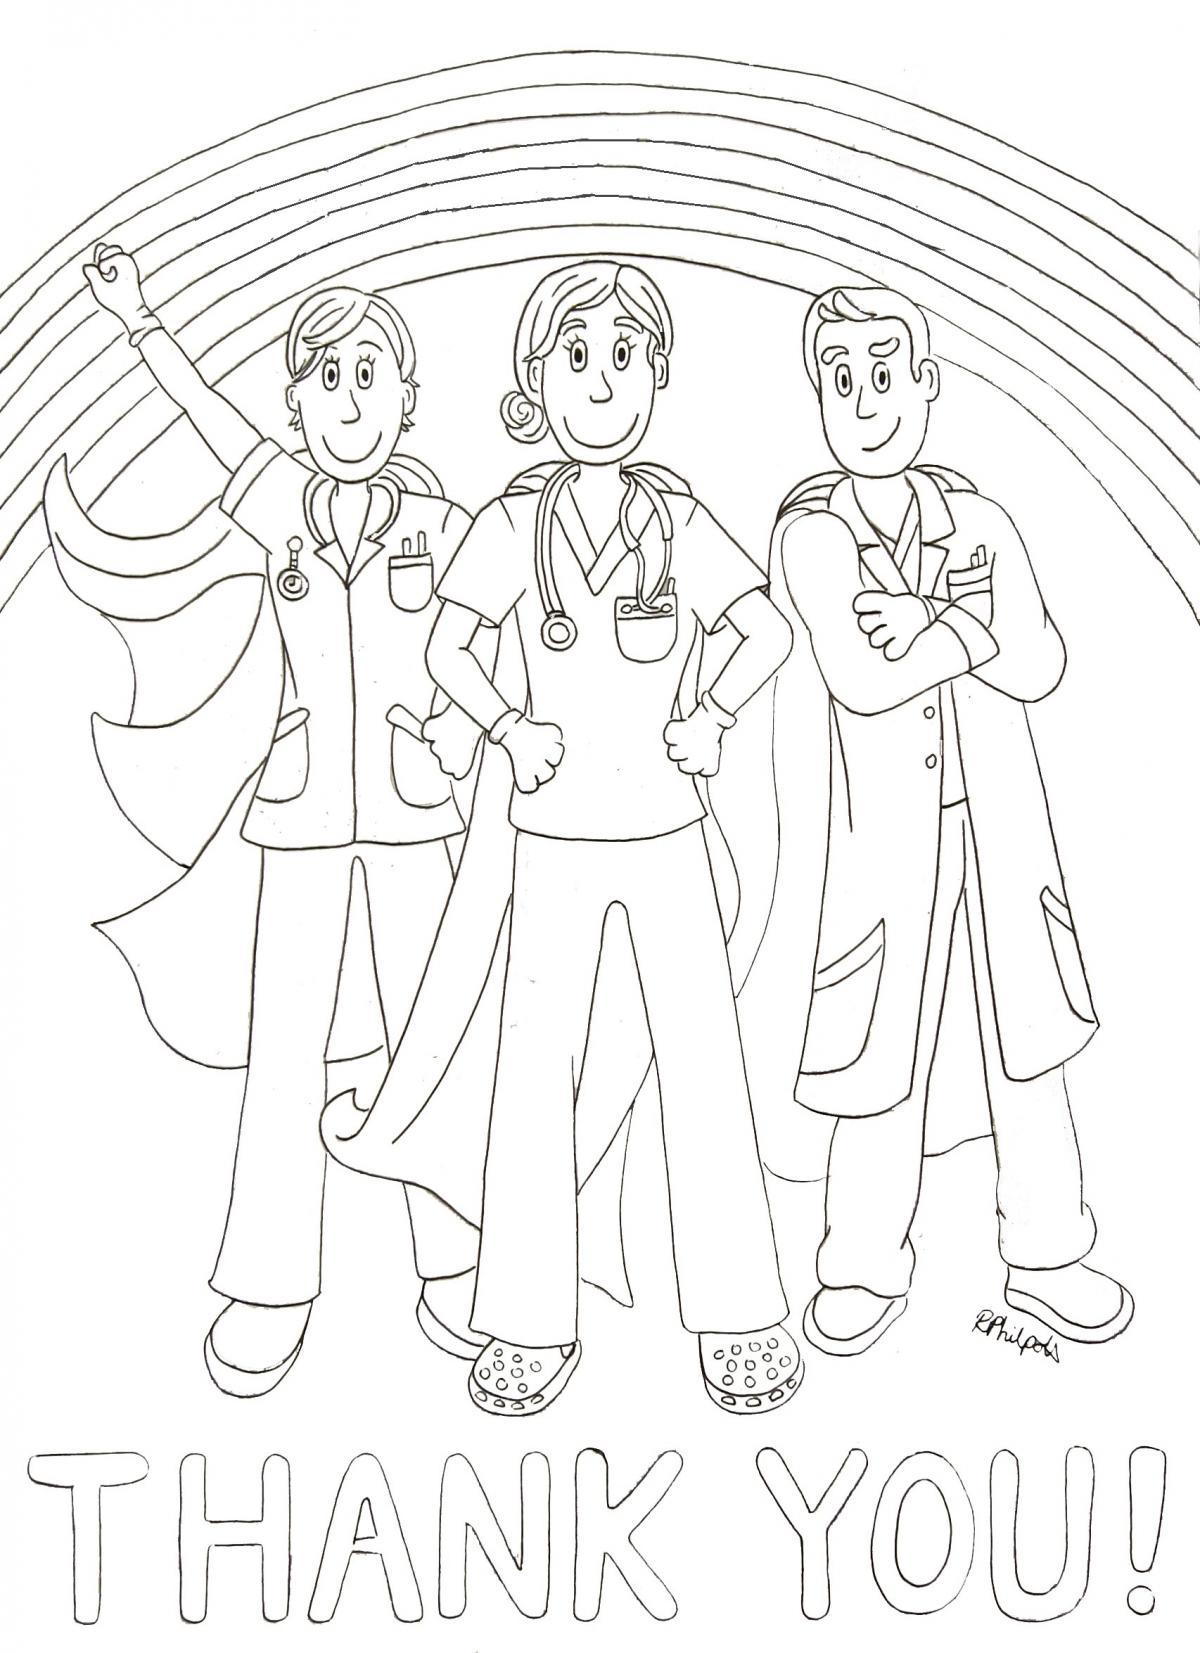 Warrior Coloring Pages - Coloring Pages Kids 2019 | 1653x1200